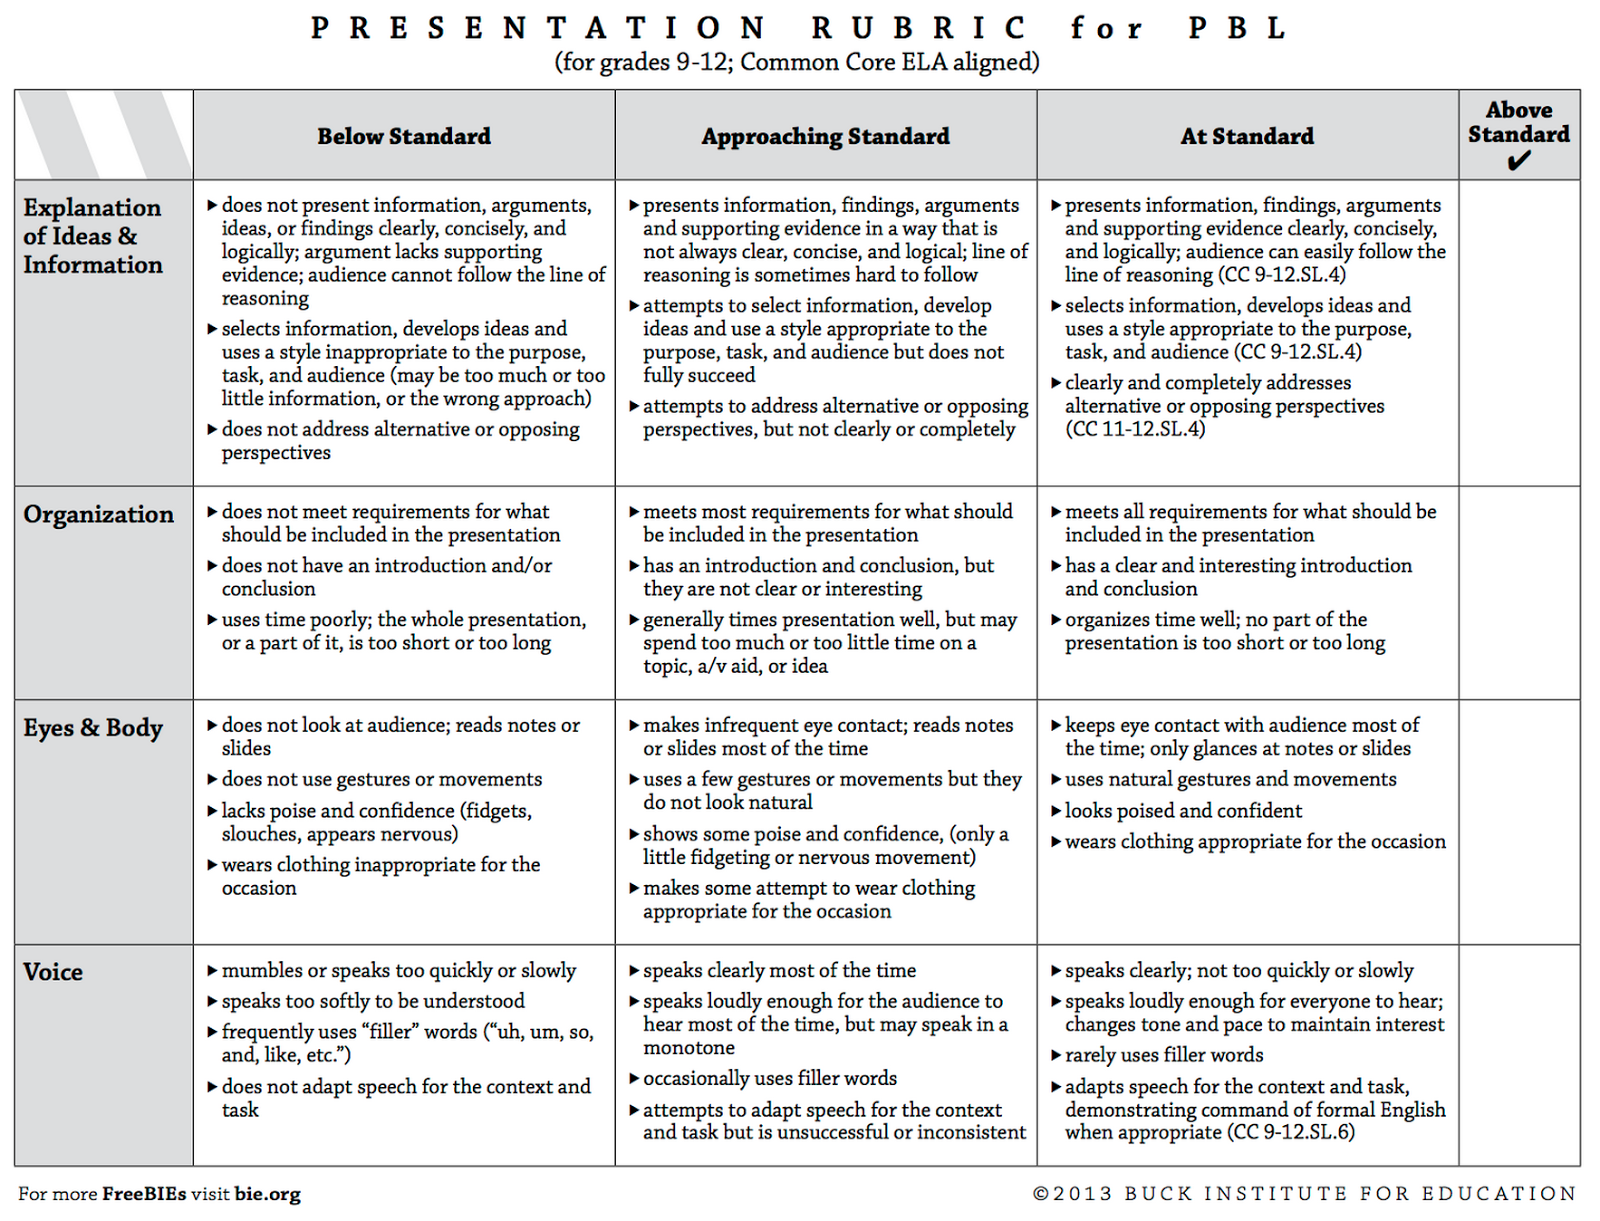 4 Great Rubrics to Develop Students Presentations and Speaking ...